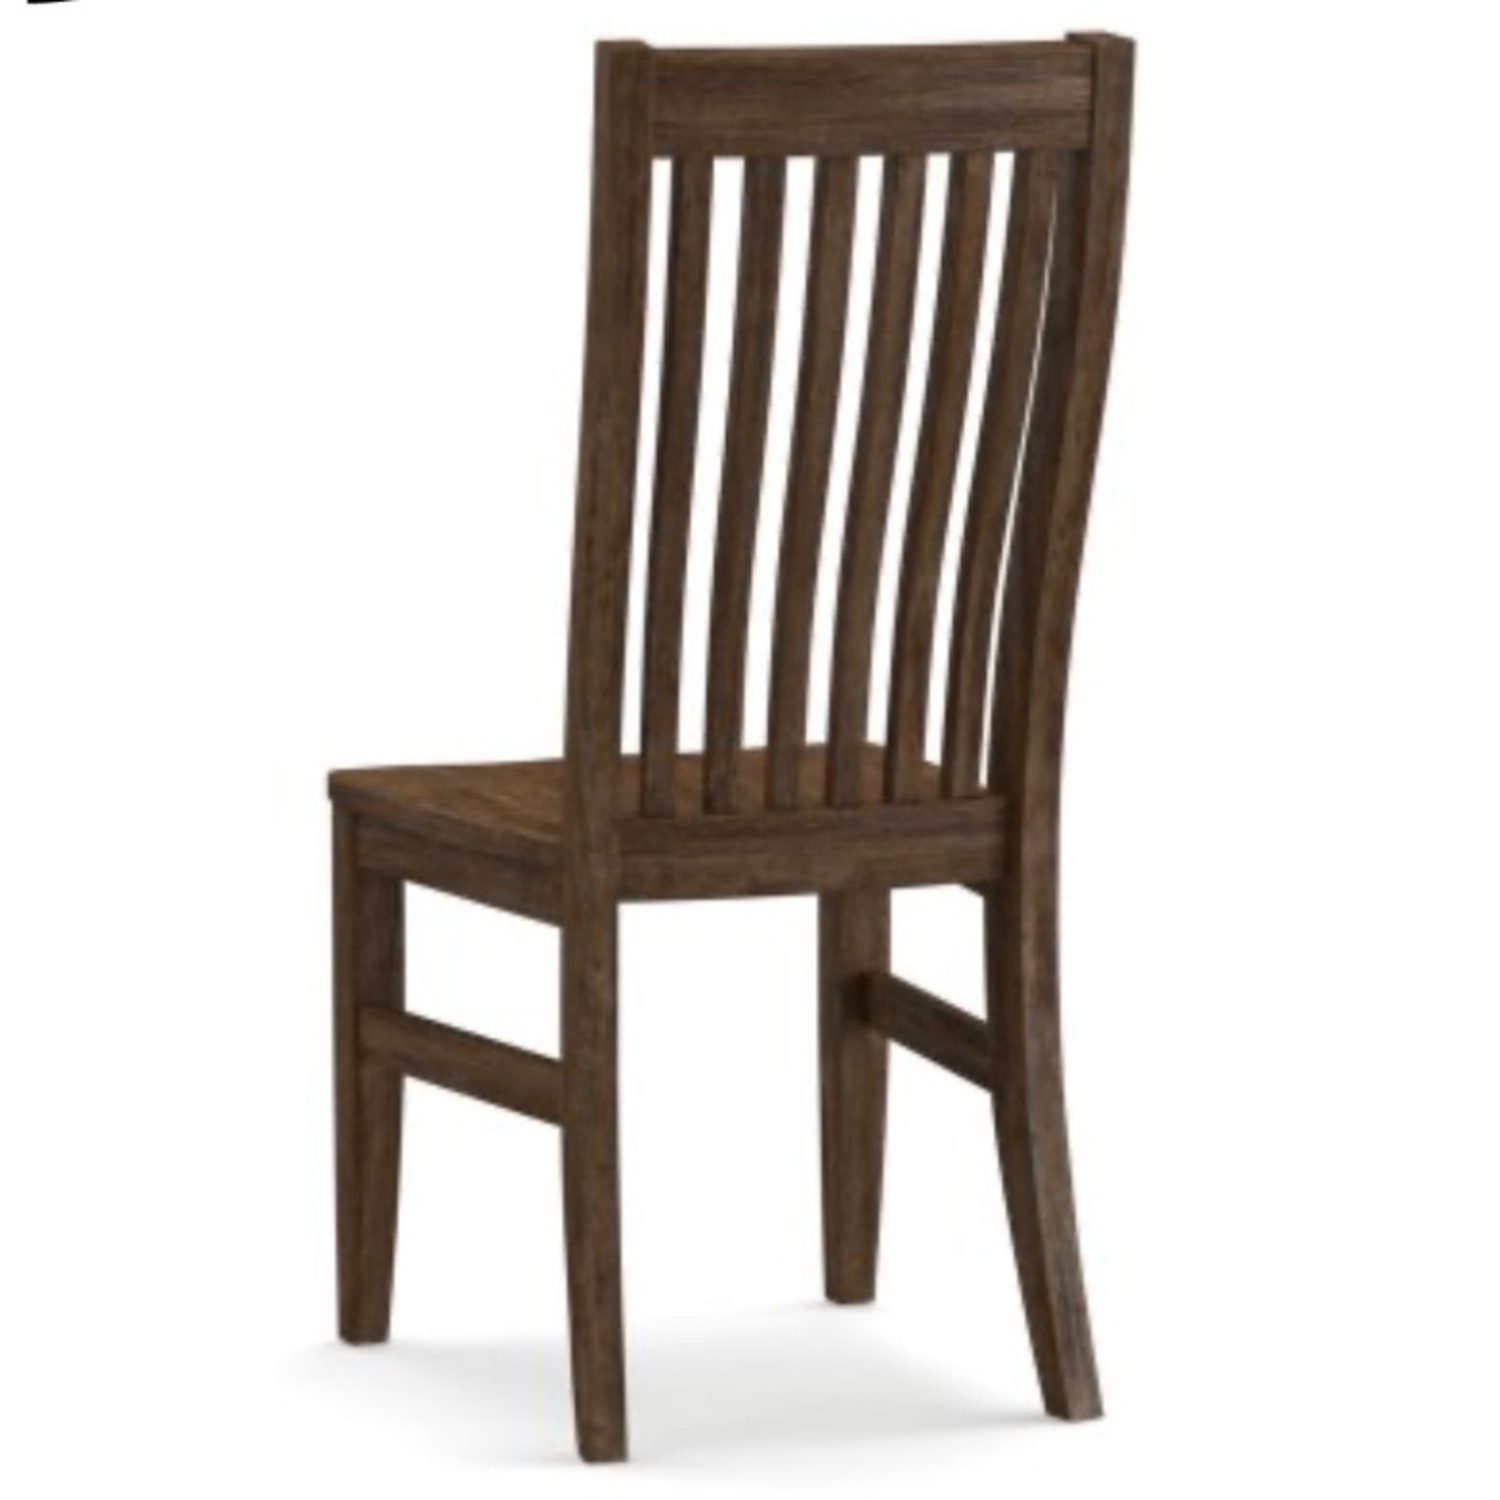 Pottery Barn Rustic Mahogany Trieste Chairs - image-2